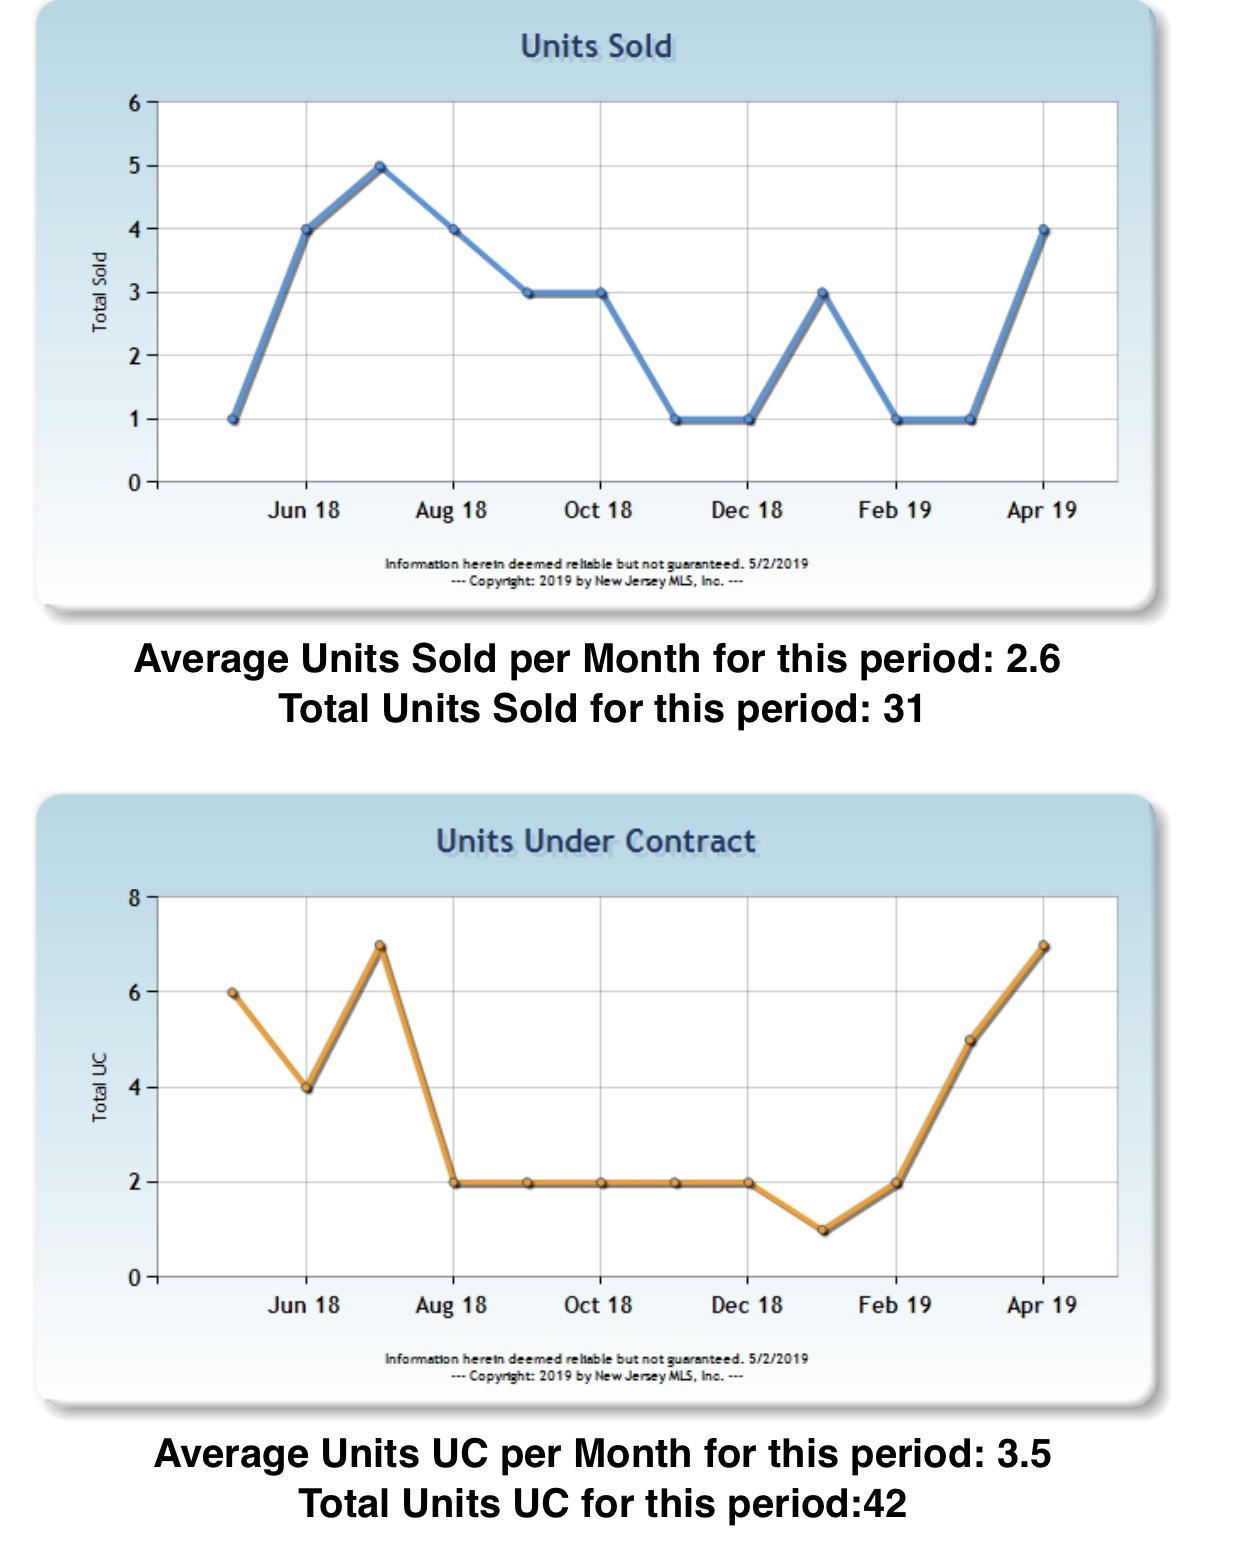 Saddle River Homes Sold in the past 12 months